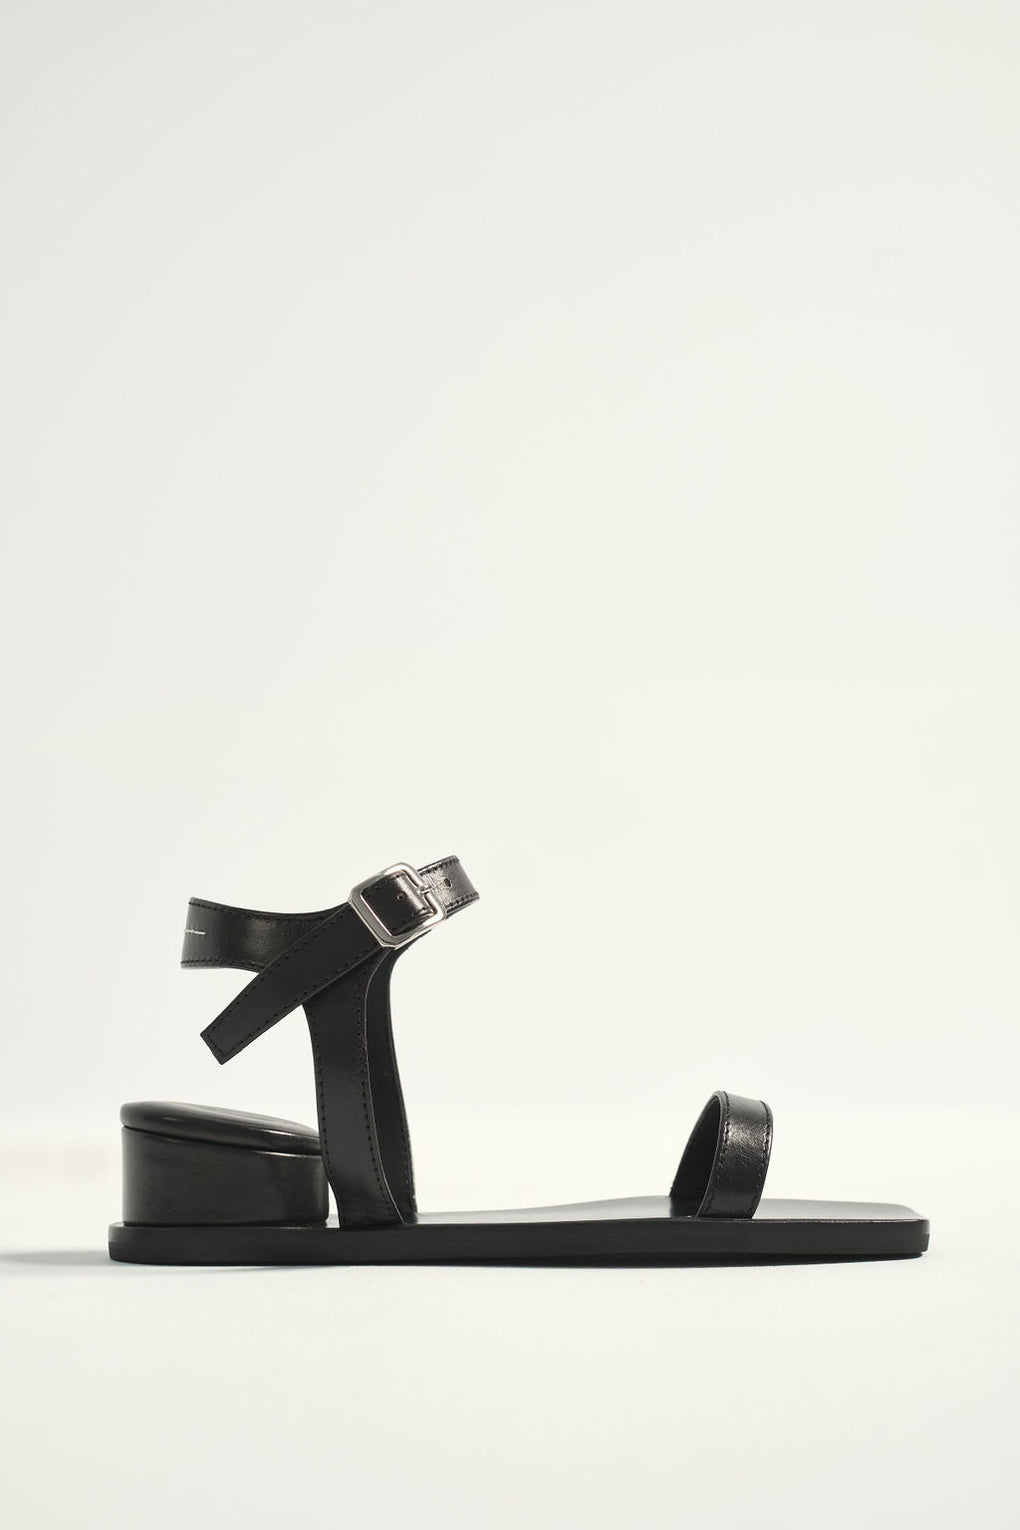 MM6-Maison Margiela-black strap sandal-Idun-St. Paul-stacked heel